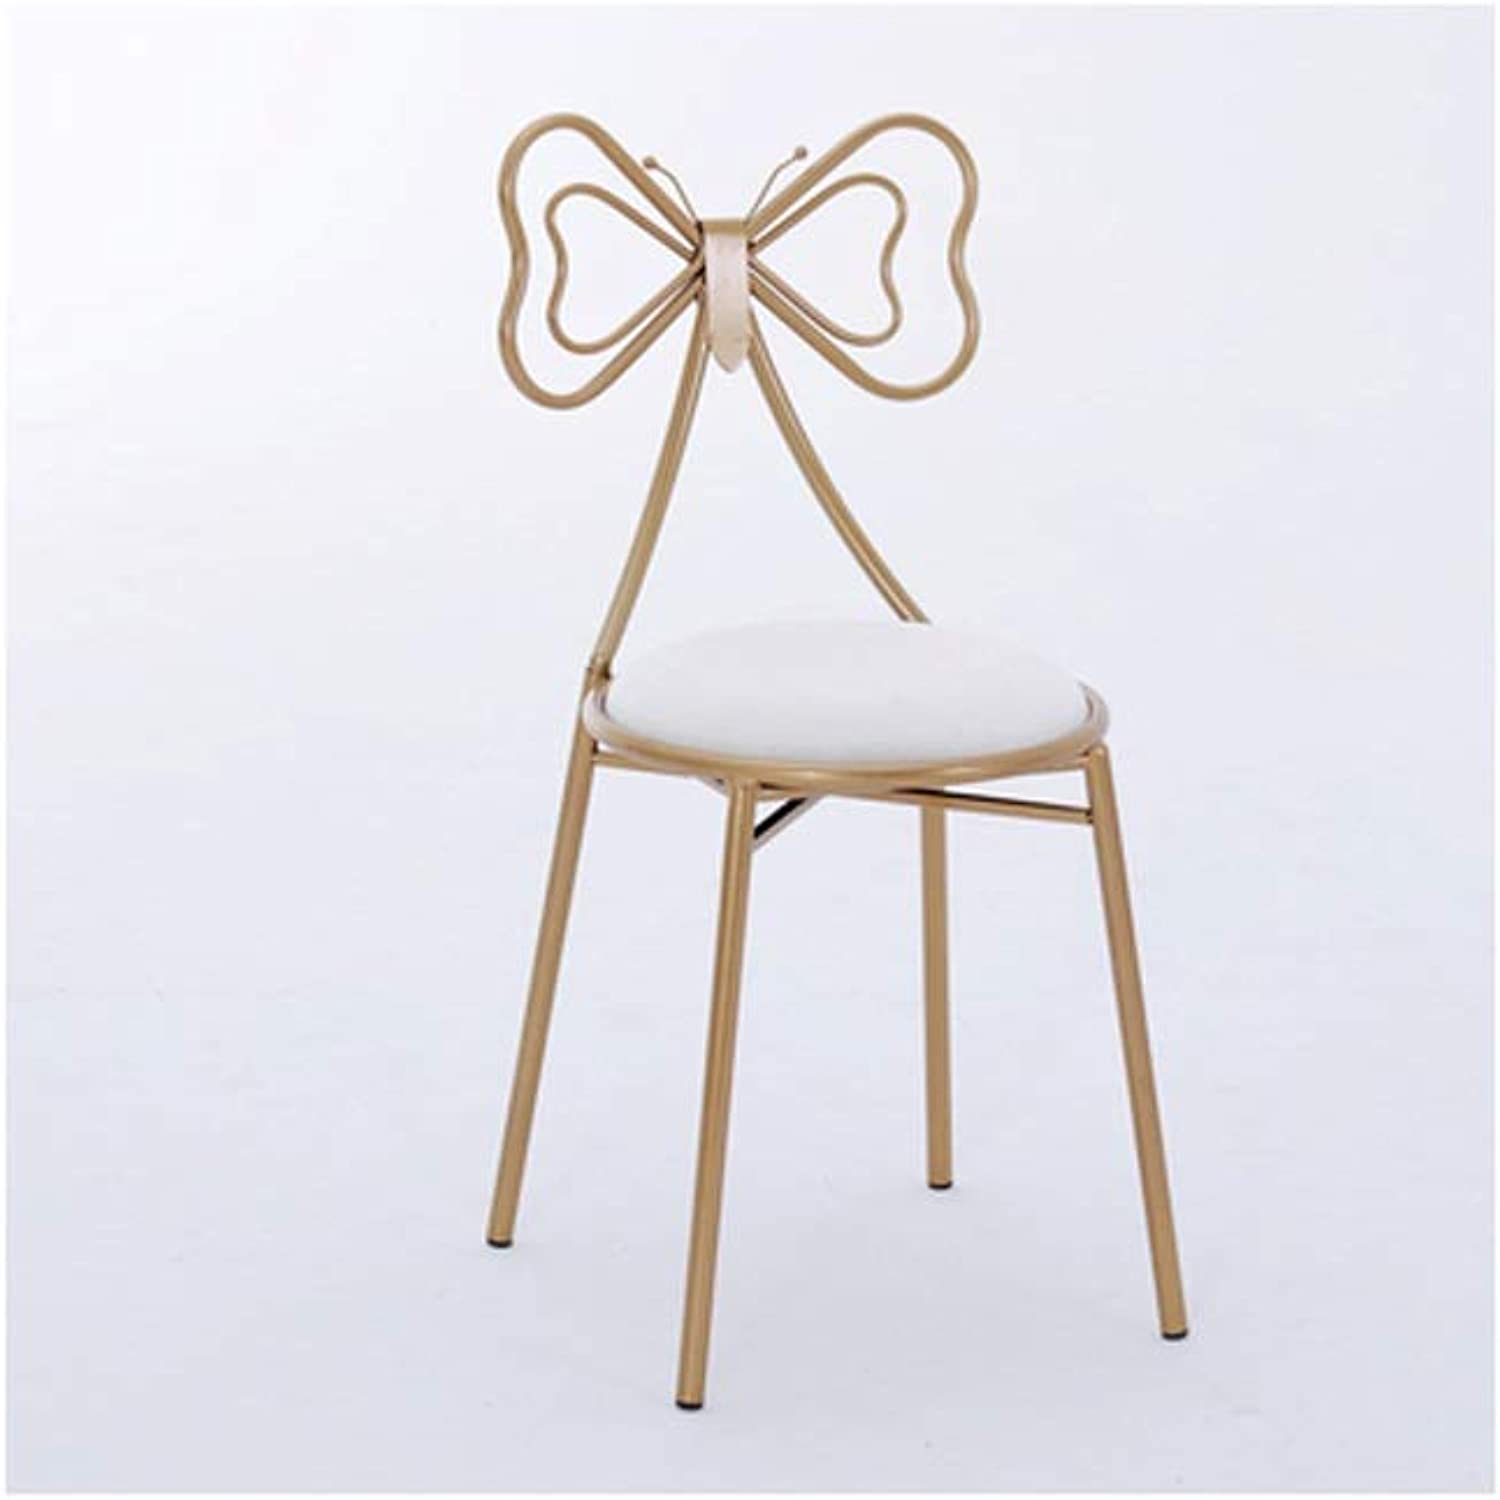 YJWOZ golden Makeup Chair High Rebound Sponge Cushion Bow Metal Back Sitting Height 45CM Four color Optional Chair (color   A, Material   Suede Cushion)